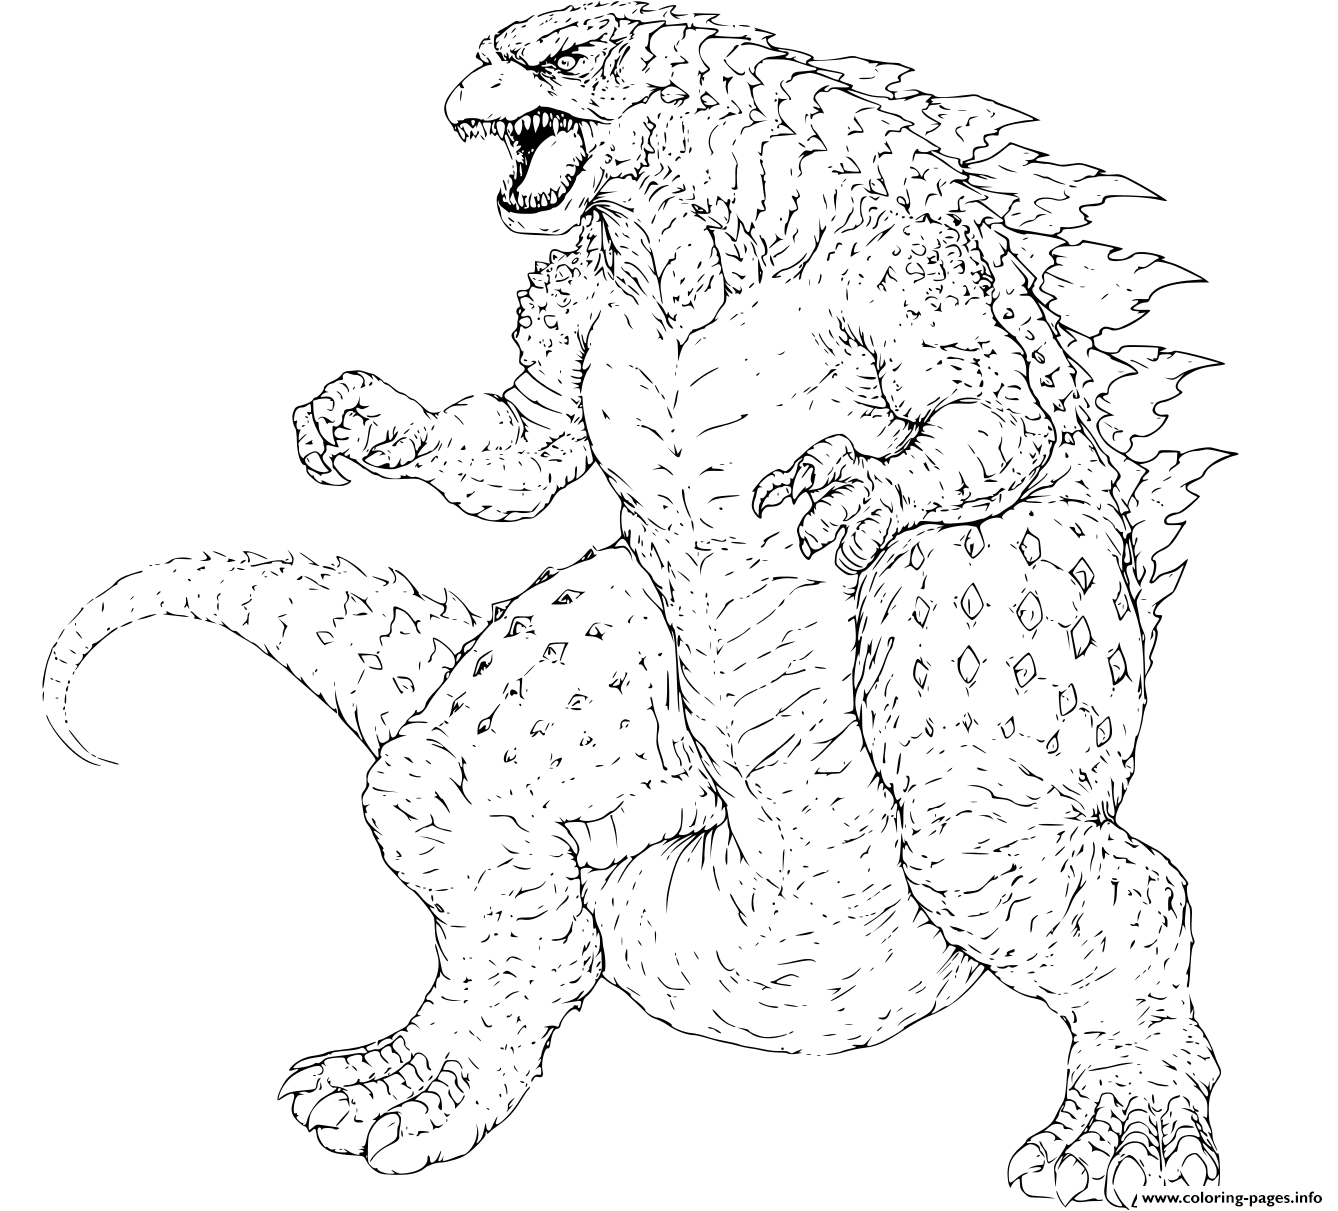 Godzilla Gojira Japanese Words Coloring Pages Printable